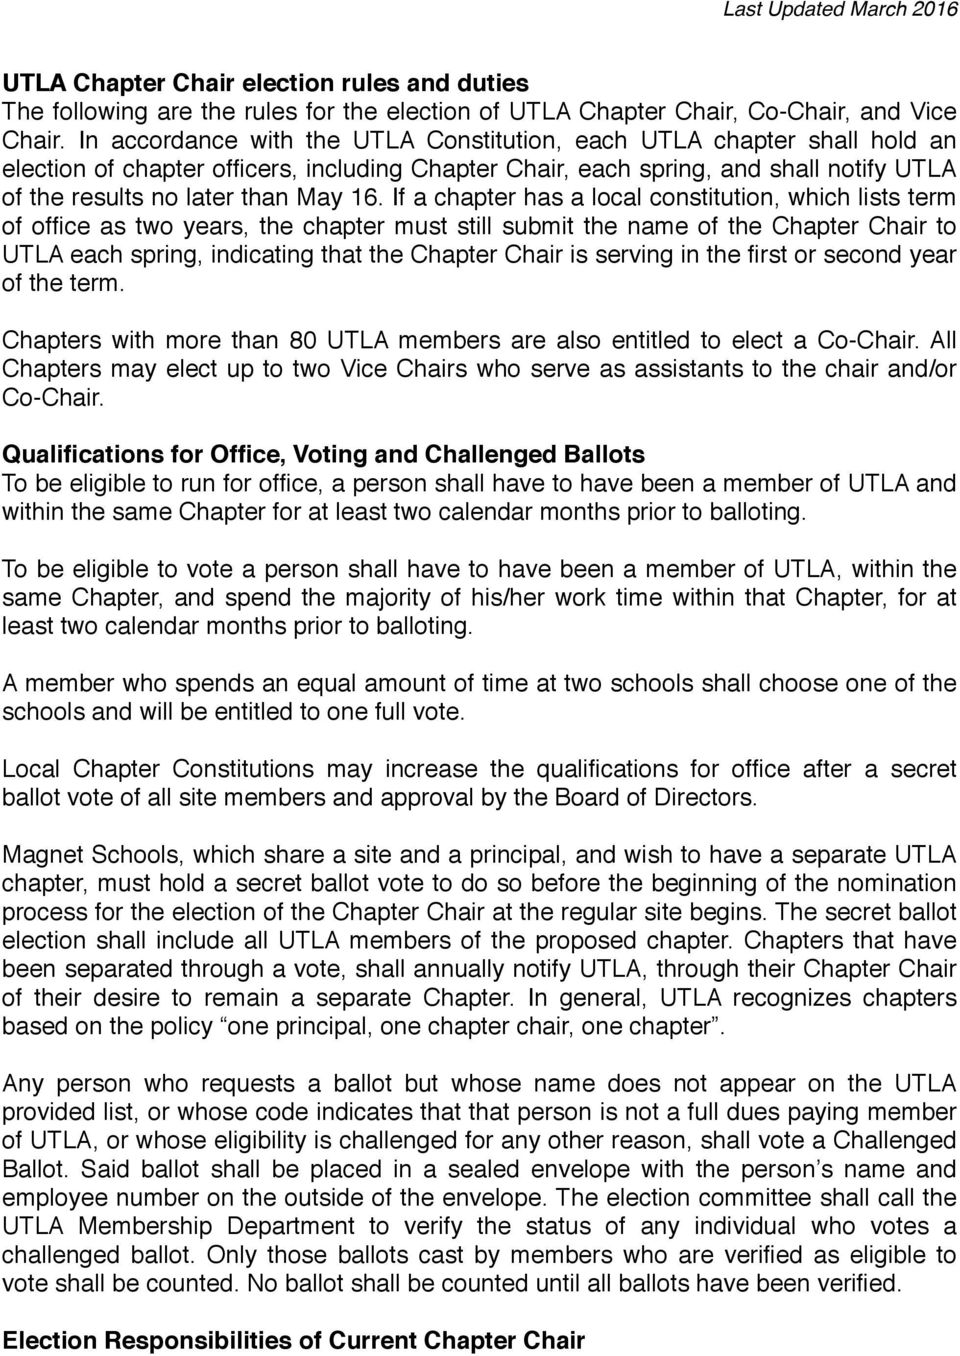 If a chapter has a local constitution, which lists term of office as two years, the chapter must still submit the name of the Chapter Chair to UTLA each spring, indicating that the Chapter Chair is